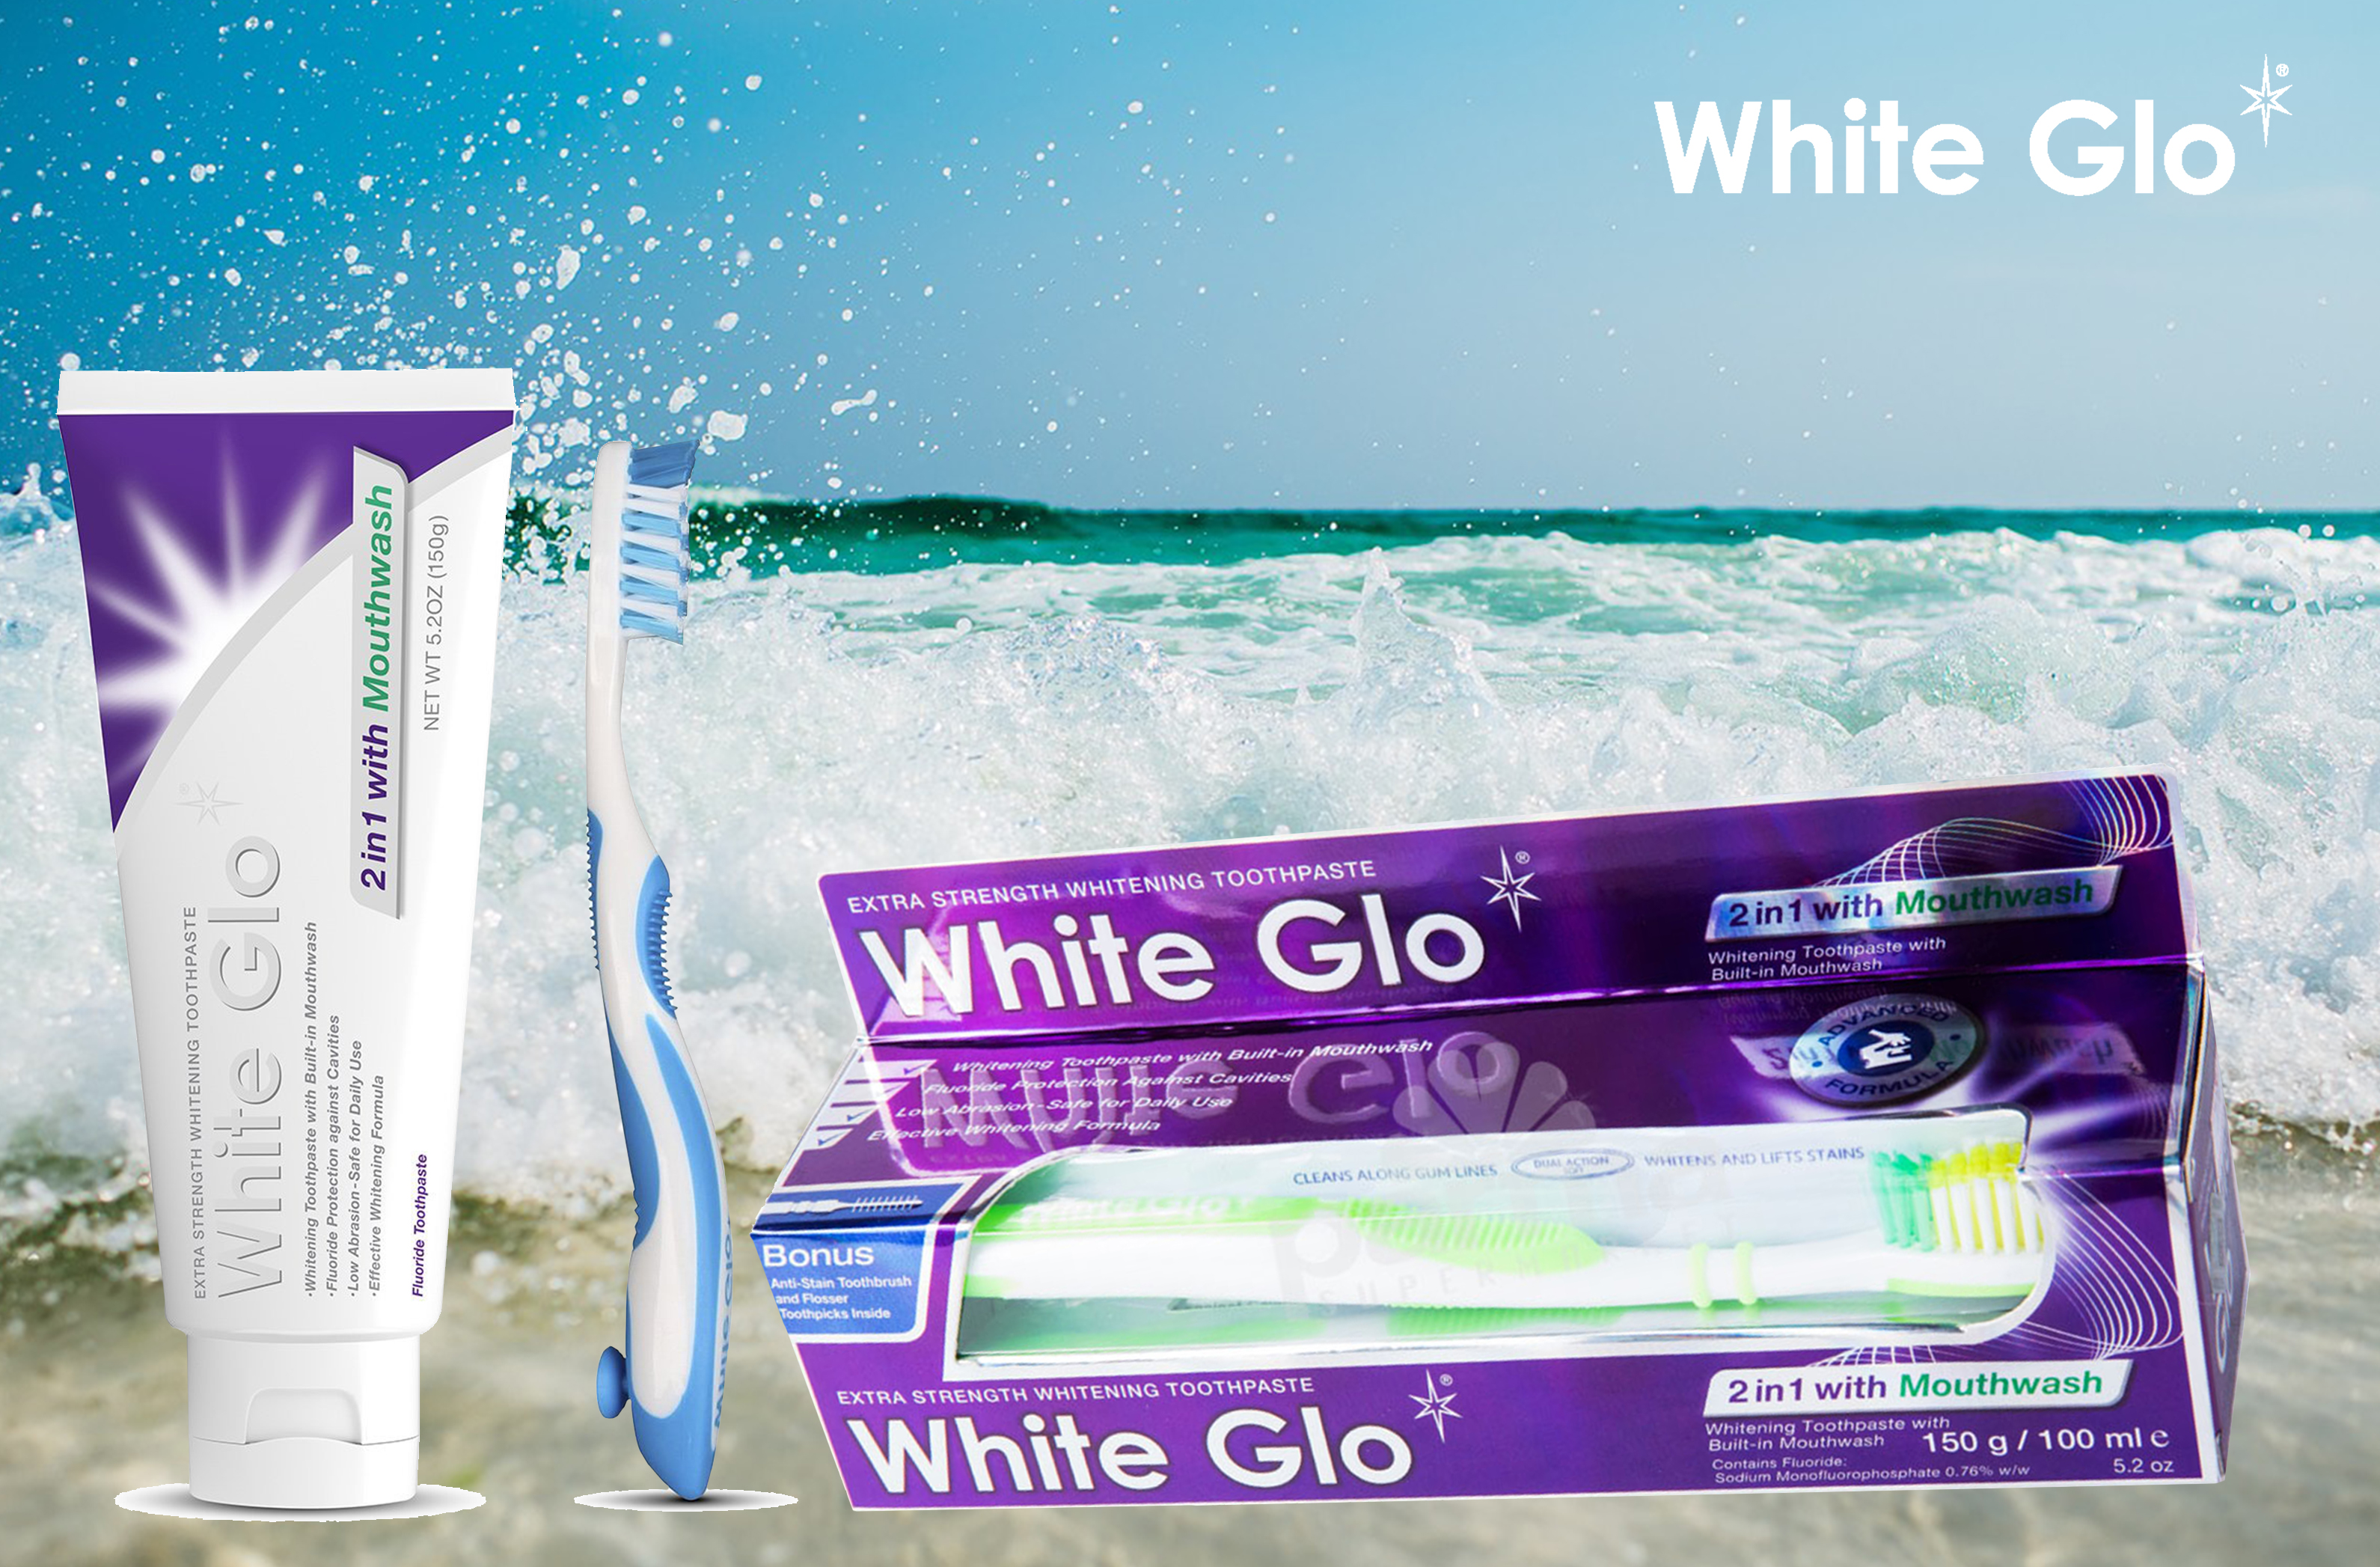 White GLO 2in1 Mouthwash